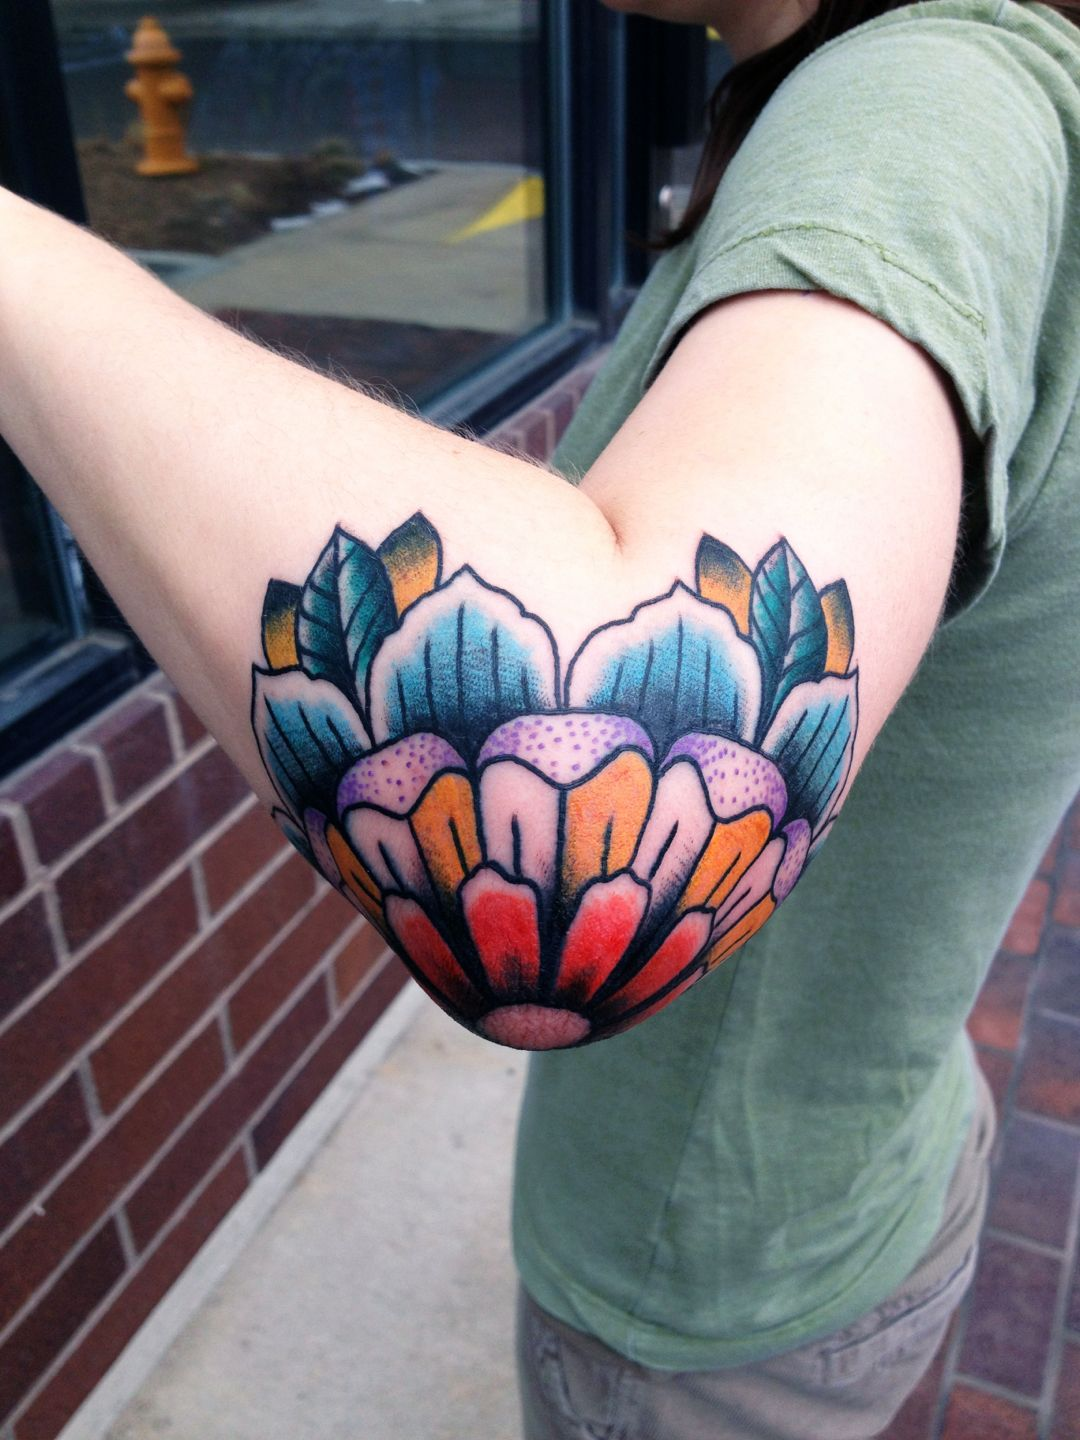 Images For > Victorian Teacup Tattoo   Elbow tattoos ...  Victorian Flower Tattoo